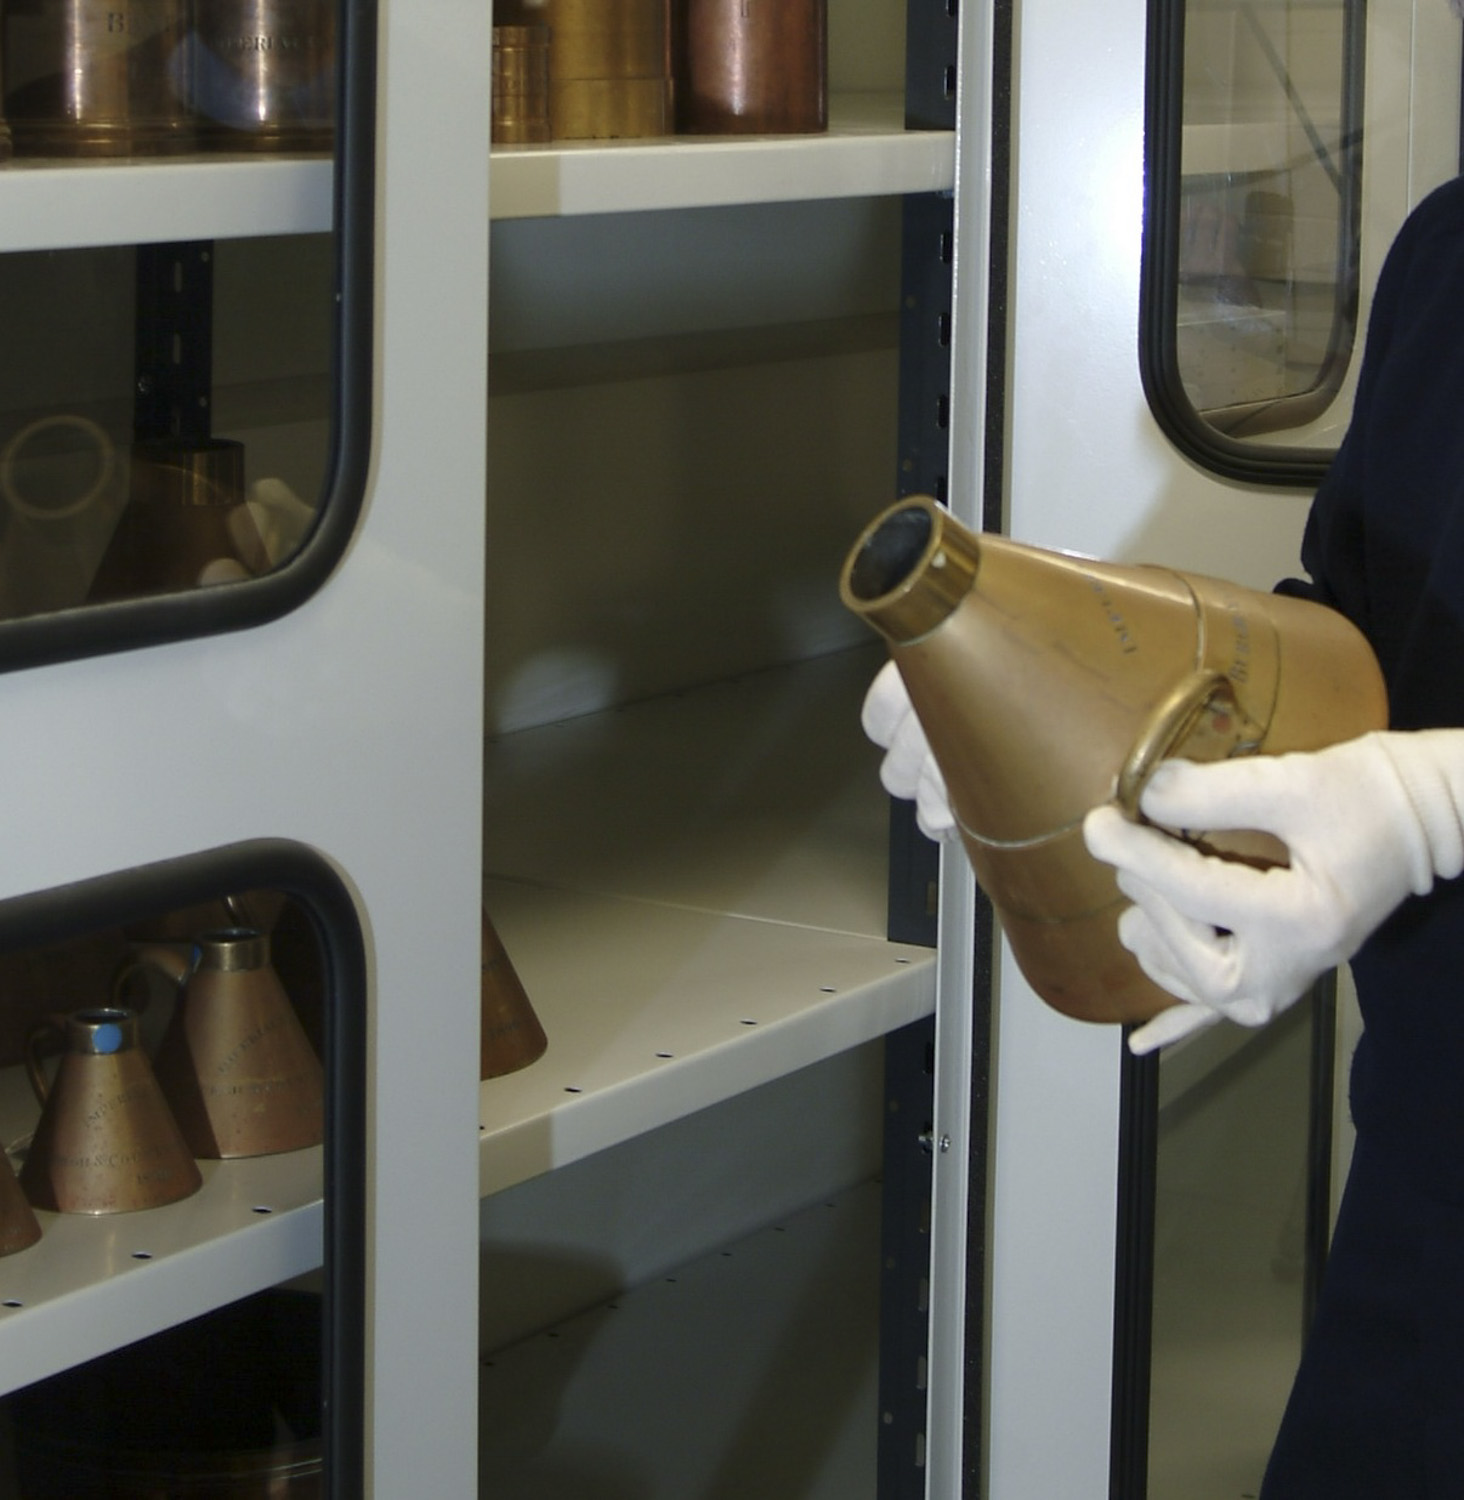 Someones gloved hands holding a brass measure. Shelves in the background.